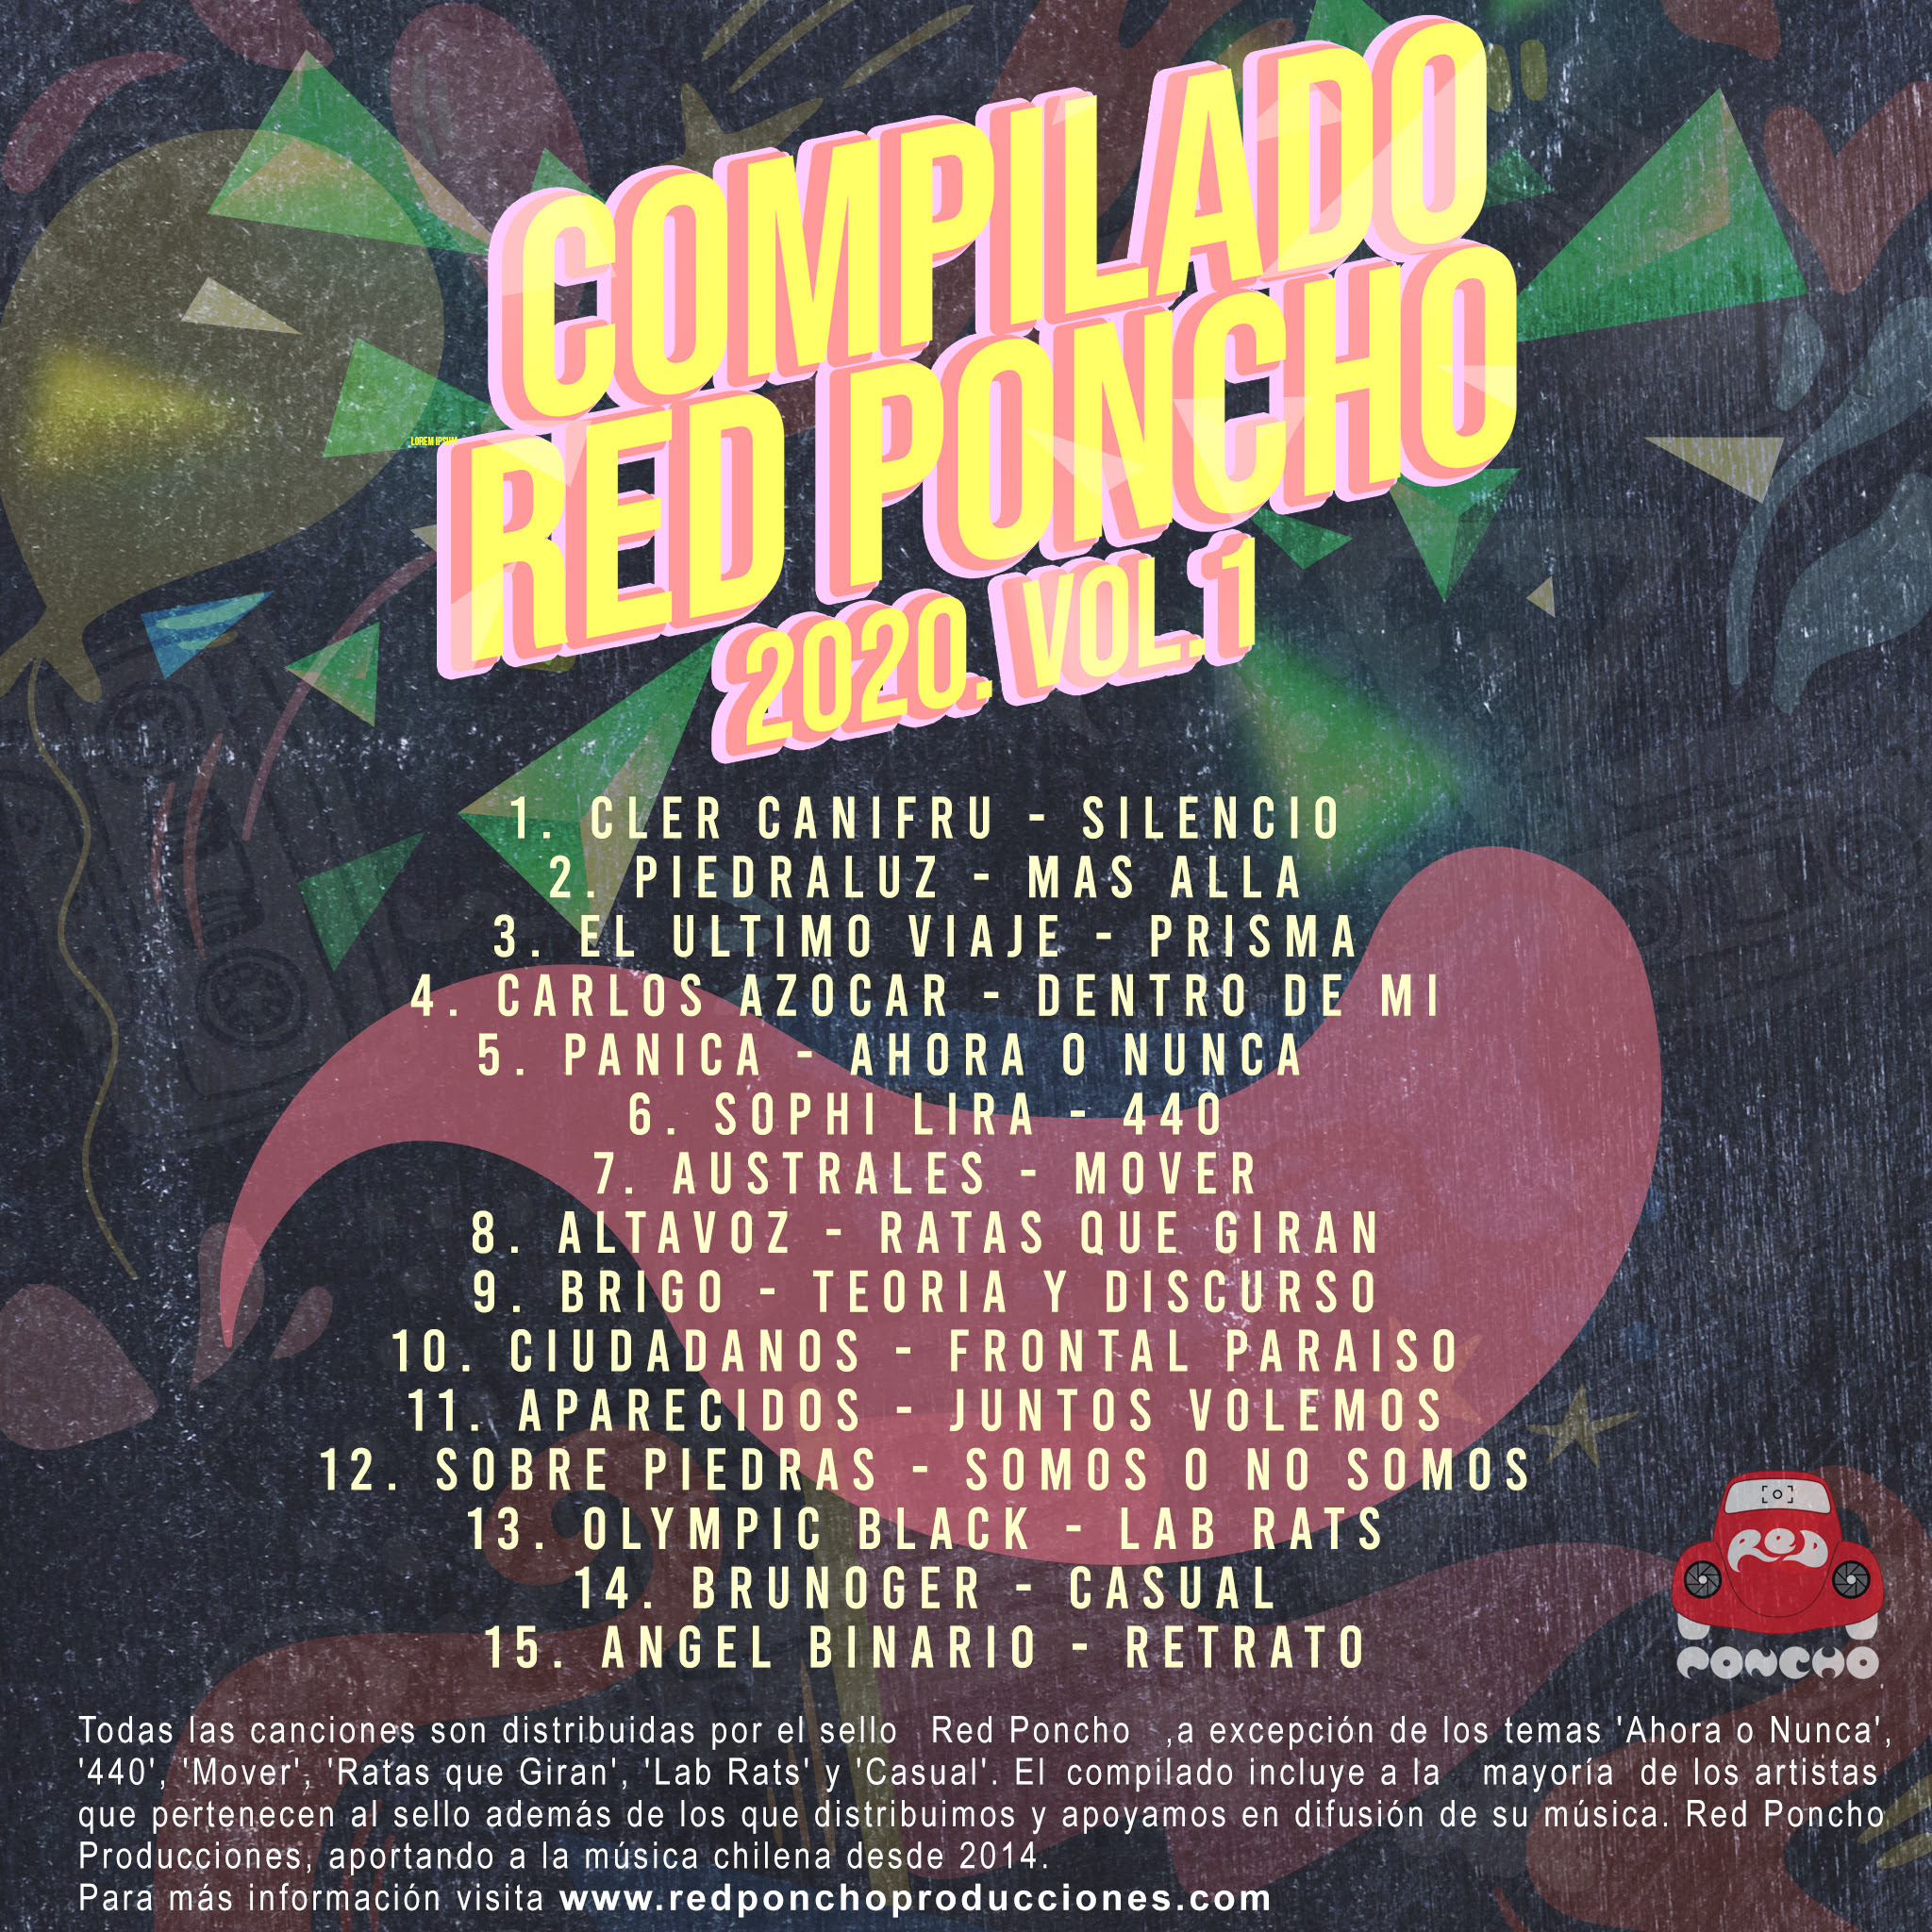 Sello Red Poncho lanza disco compilado de artistas 2020